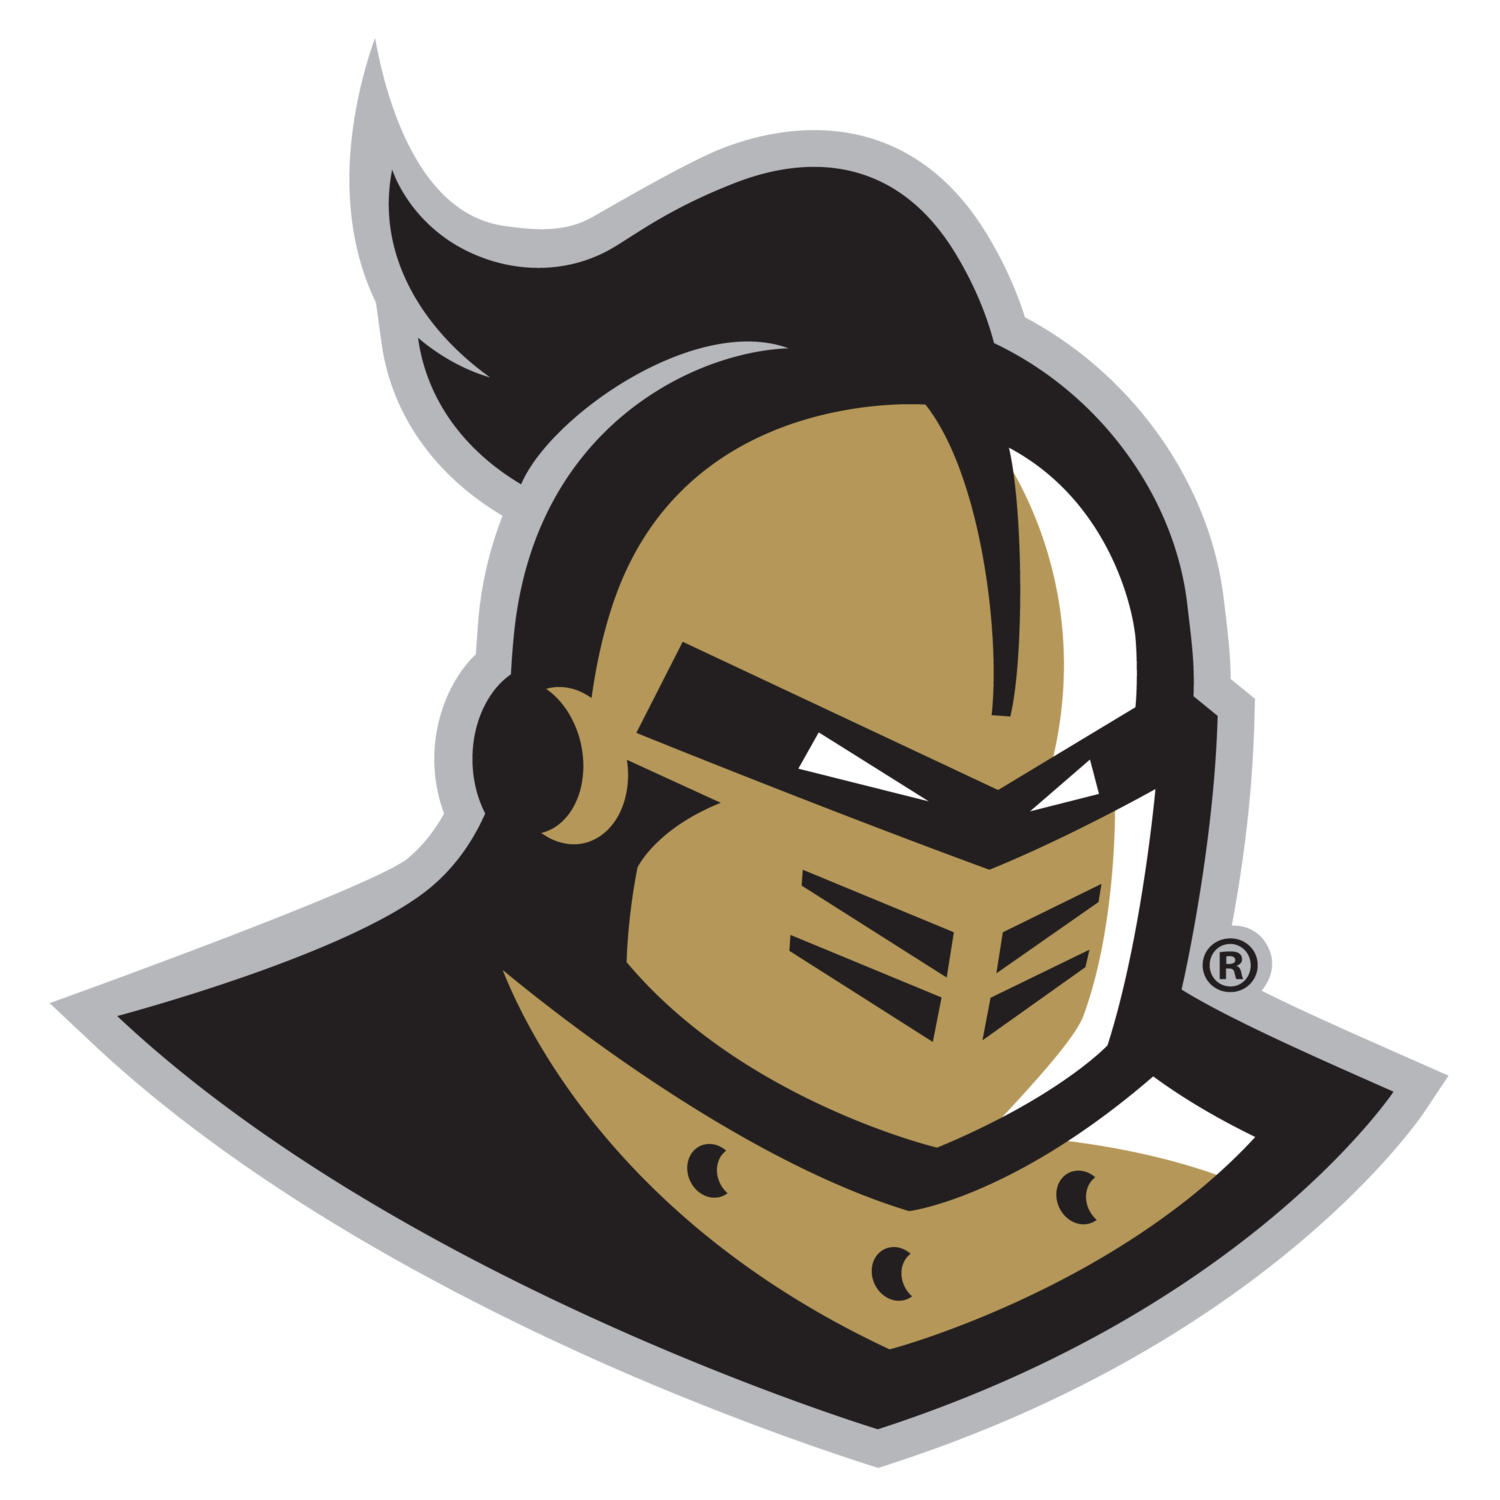 clipart knight head Clipground